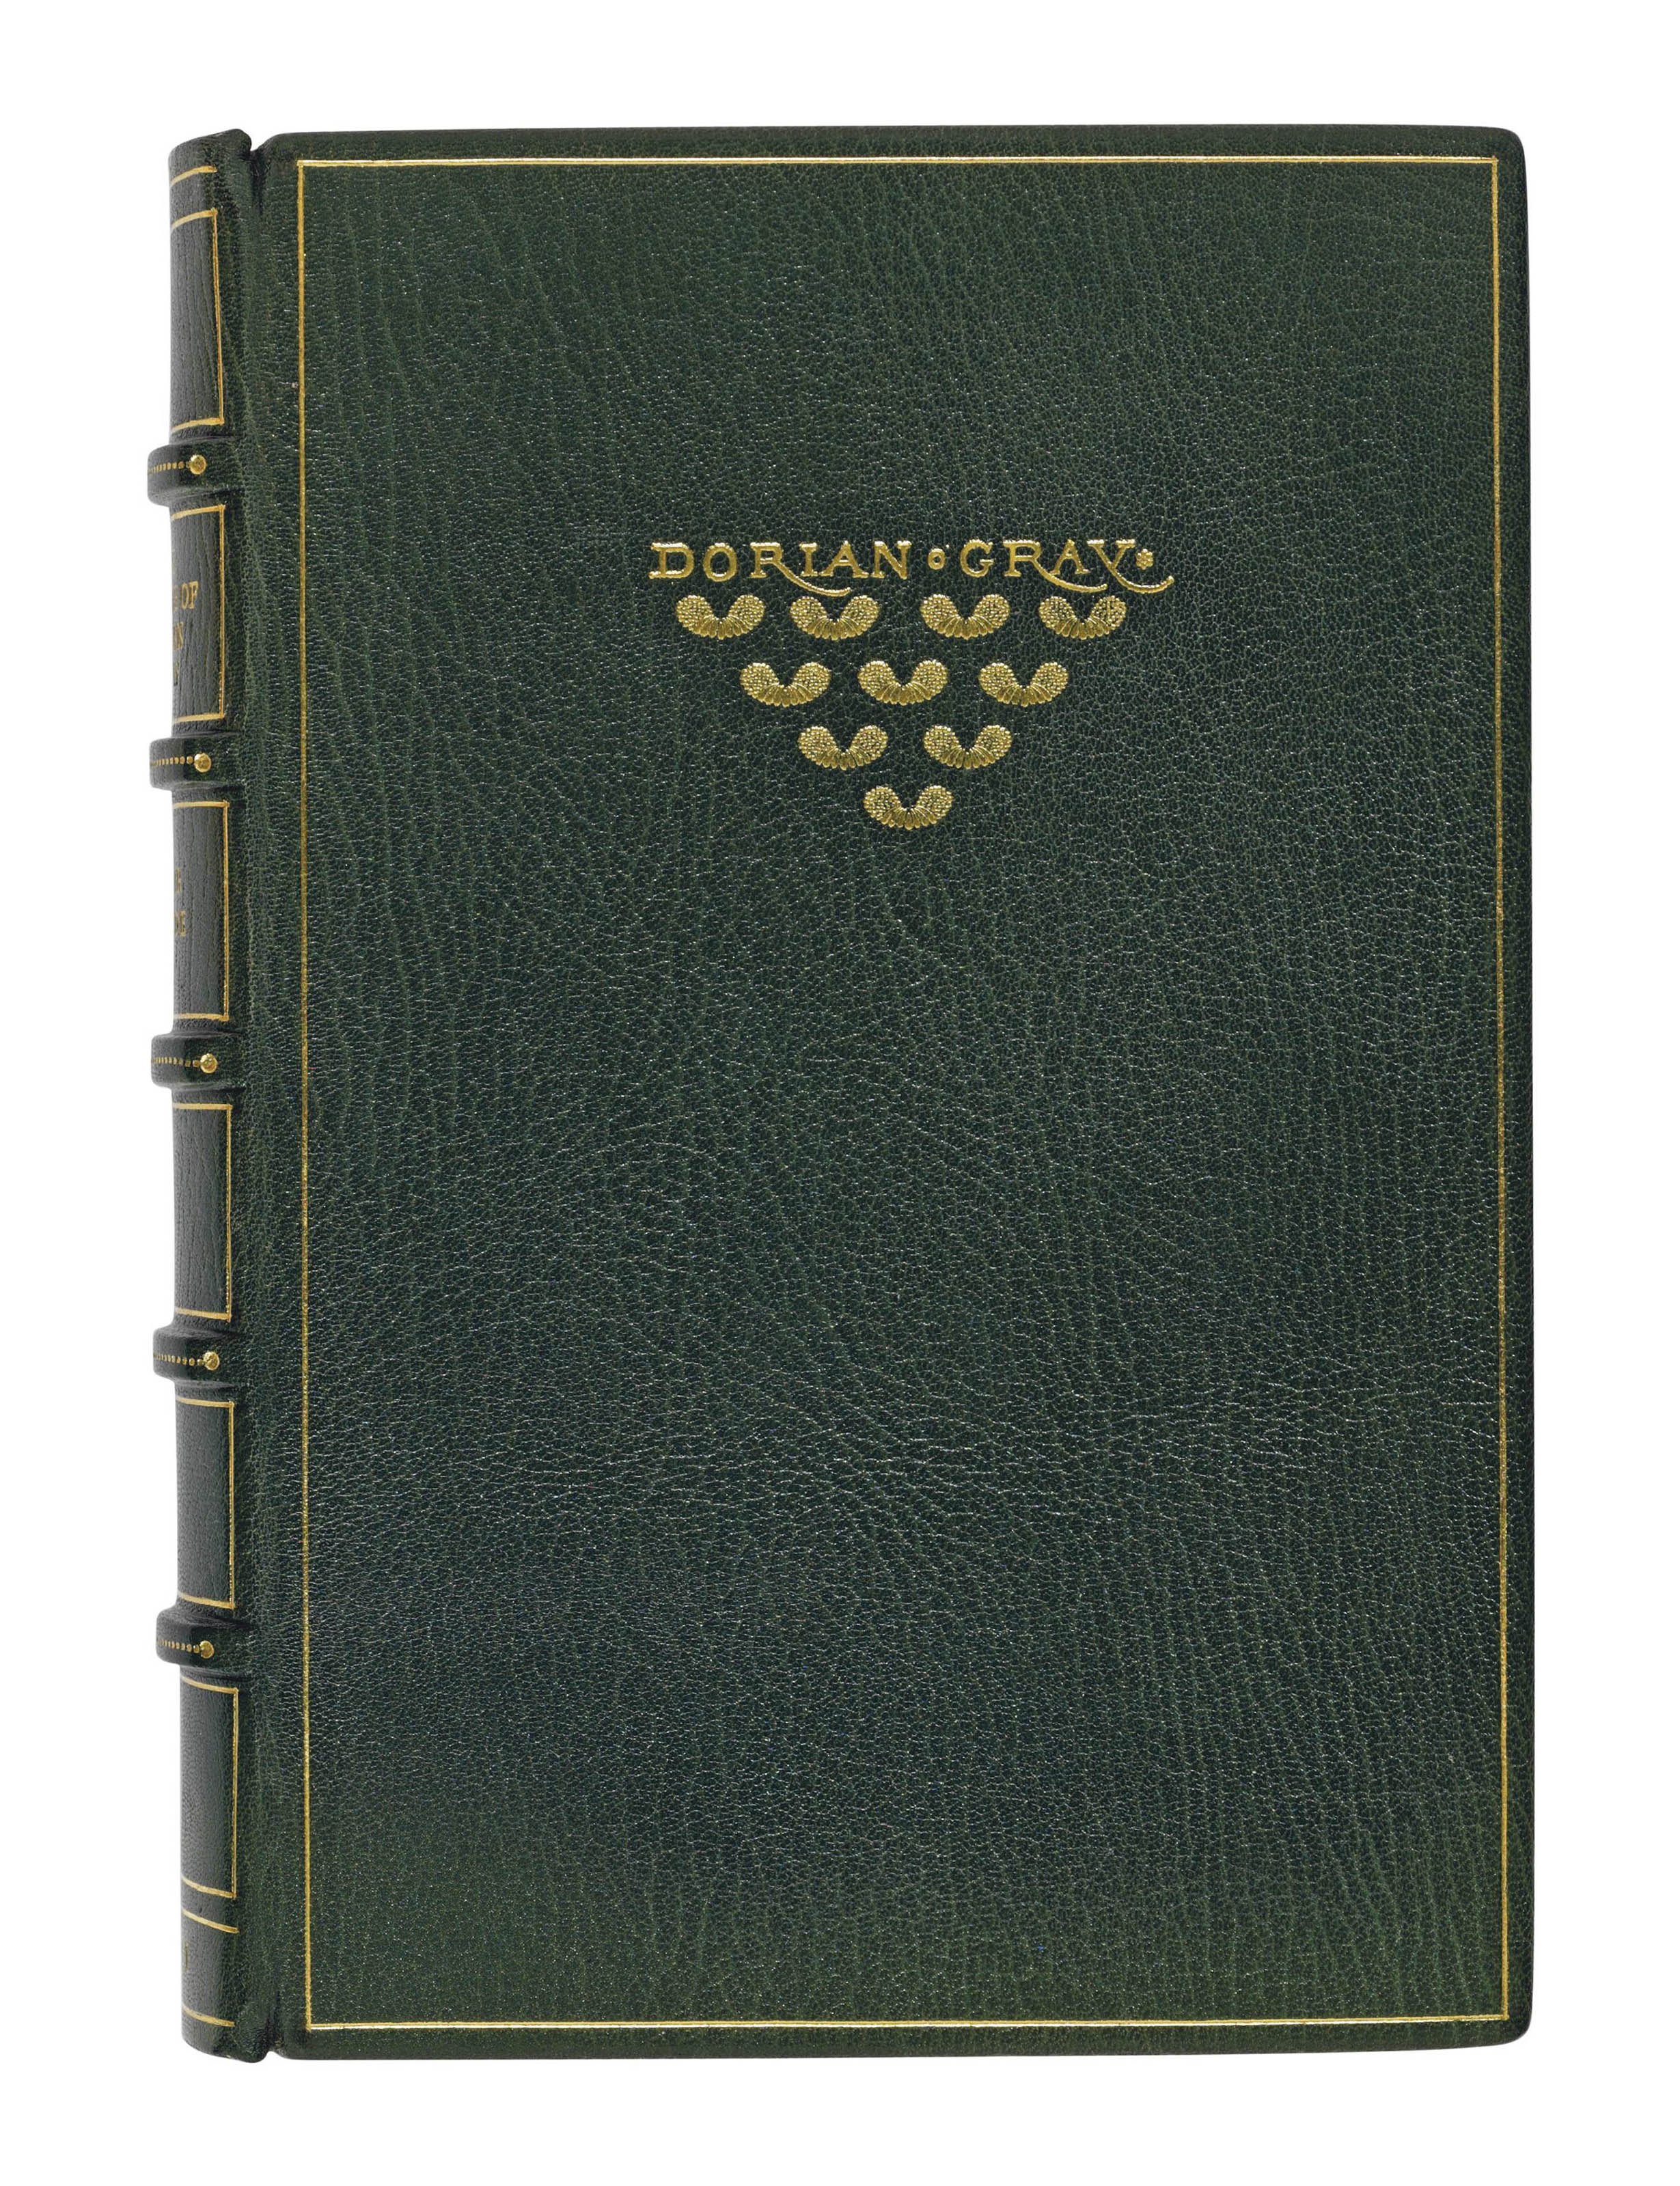 WILDE, Oscar (1854-1900). The Picture of Dorian Gray. London: Ward Lock, [1891]. 8° (187 x 125mm). Green morocco gilt by the Chelsea Bindery, front cover with gilt design after the original cloth, spine gilt, top edge gilt, others uncut. FIRST EDITION with 'nd' on p. 208. Mason 328.